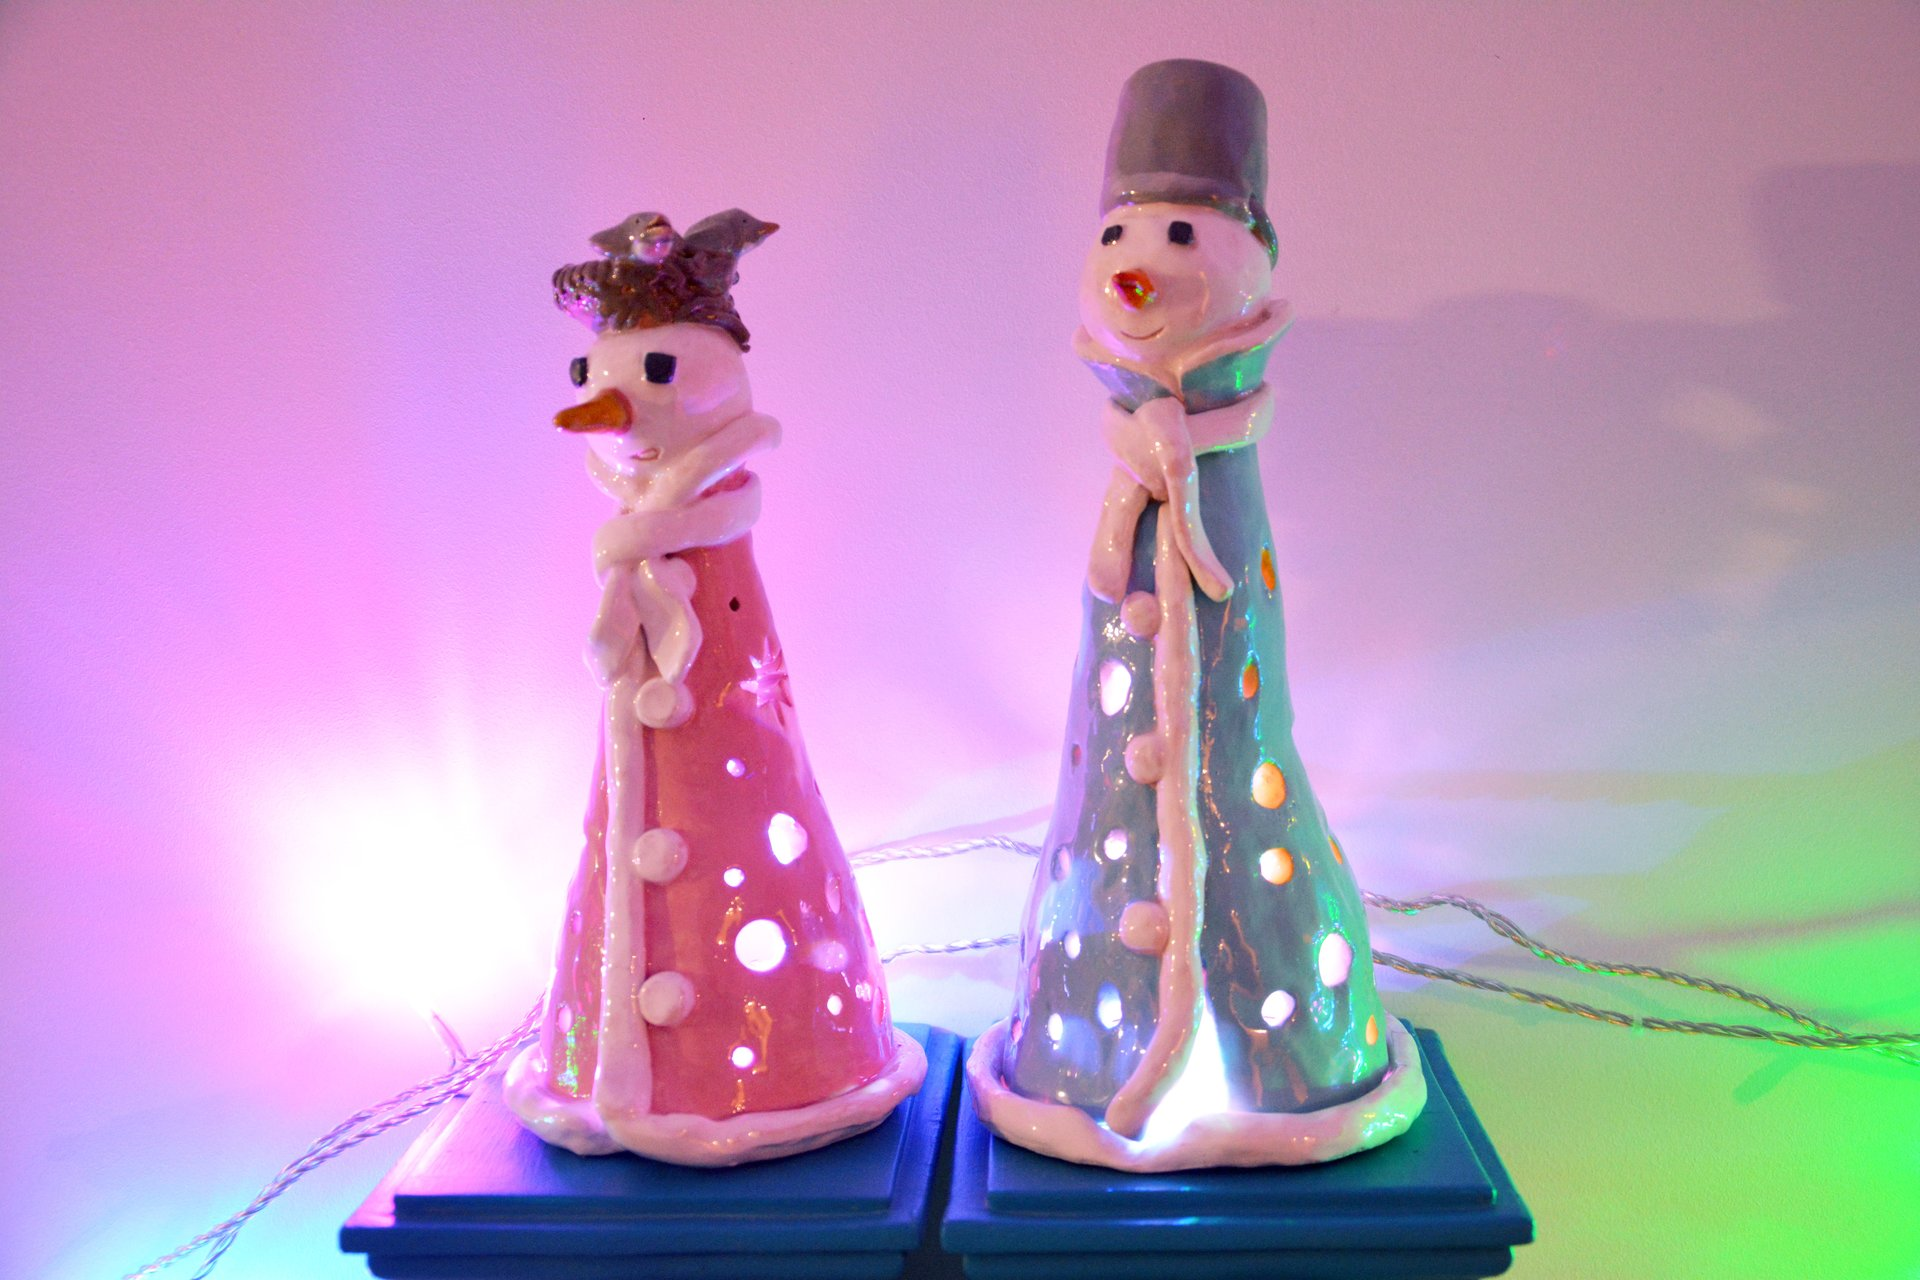 A couple of Snowmen - Ceramic new year's decor, height - 19 cm and 23 cm, photo 2 of 2.